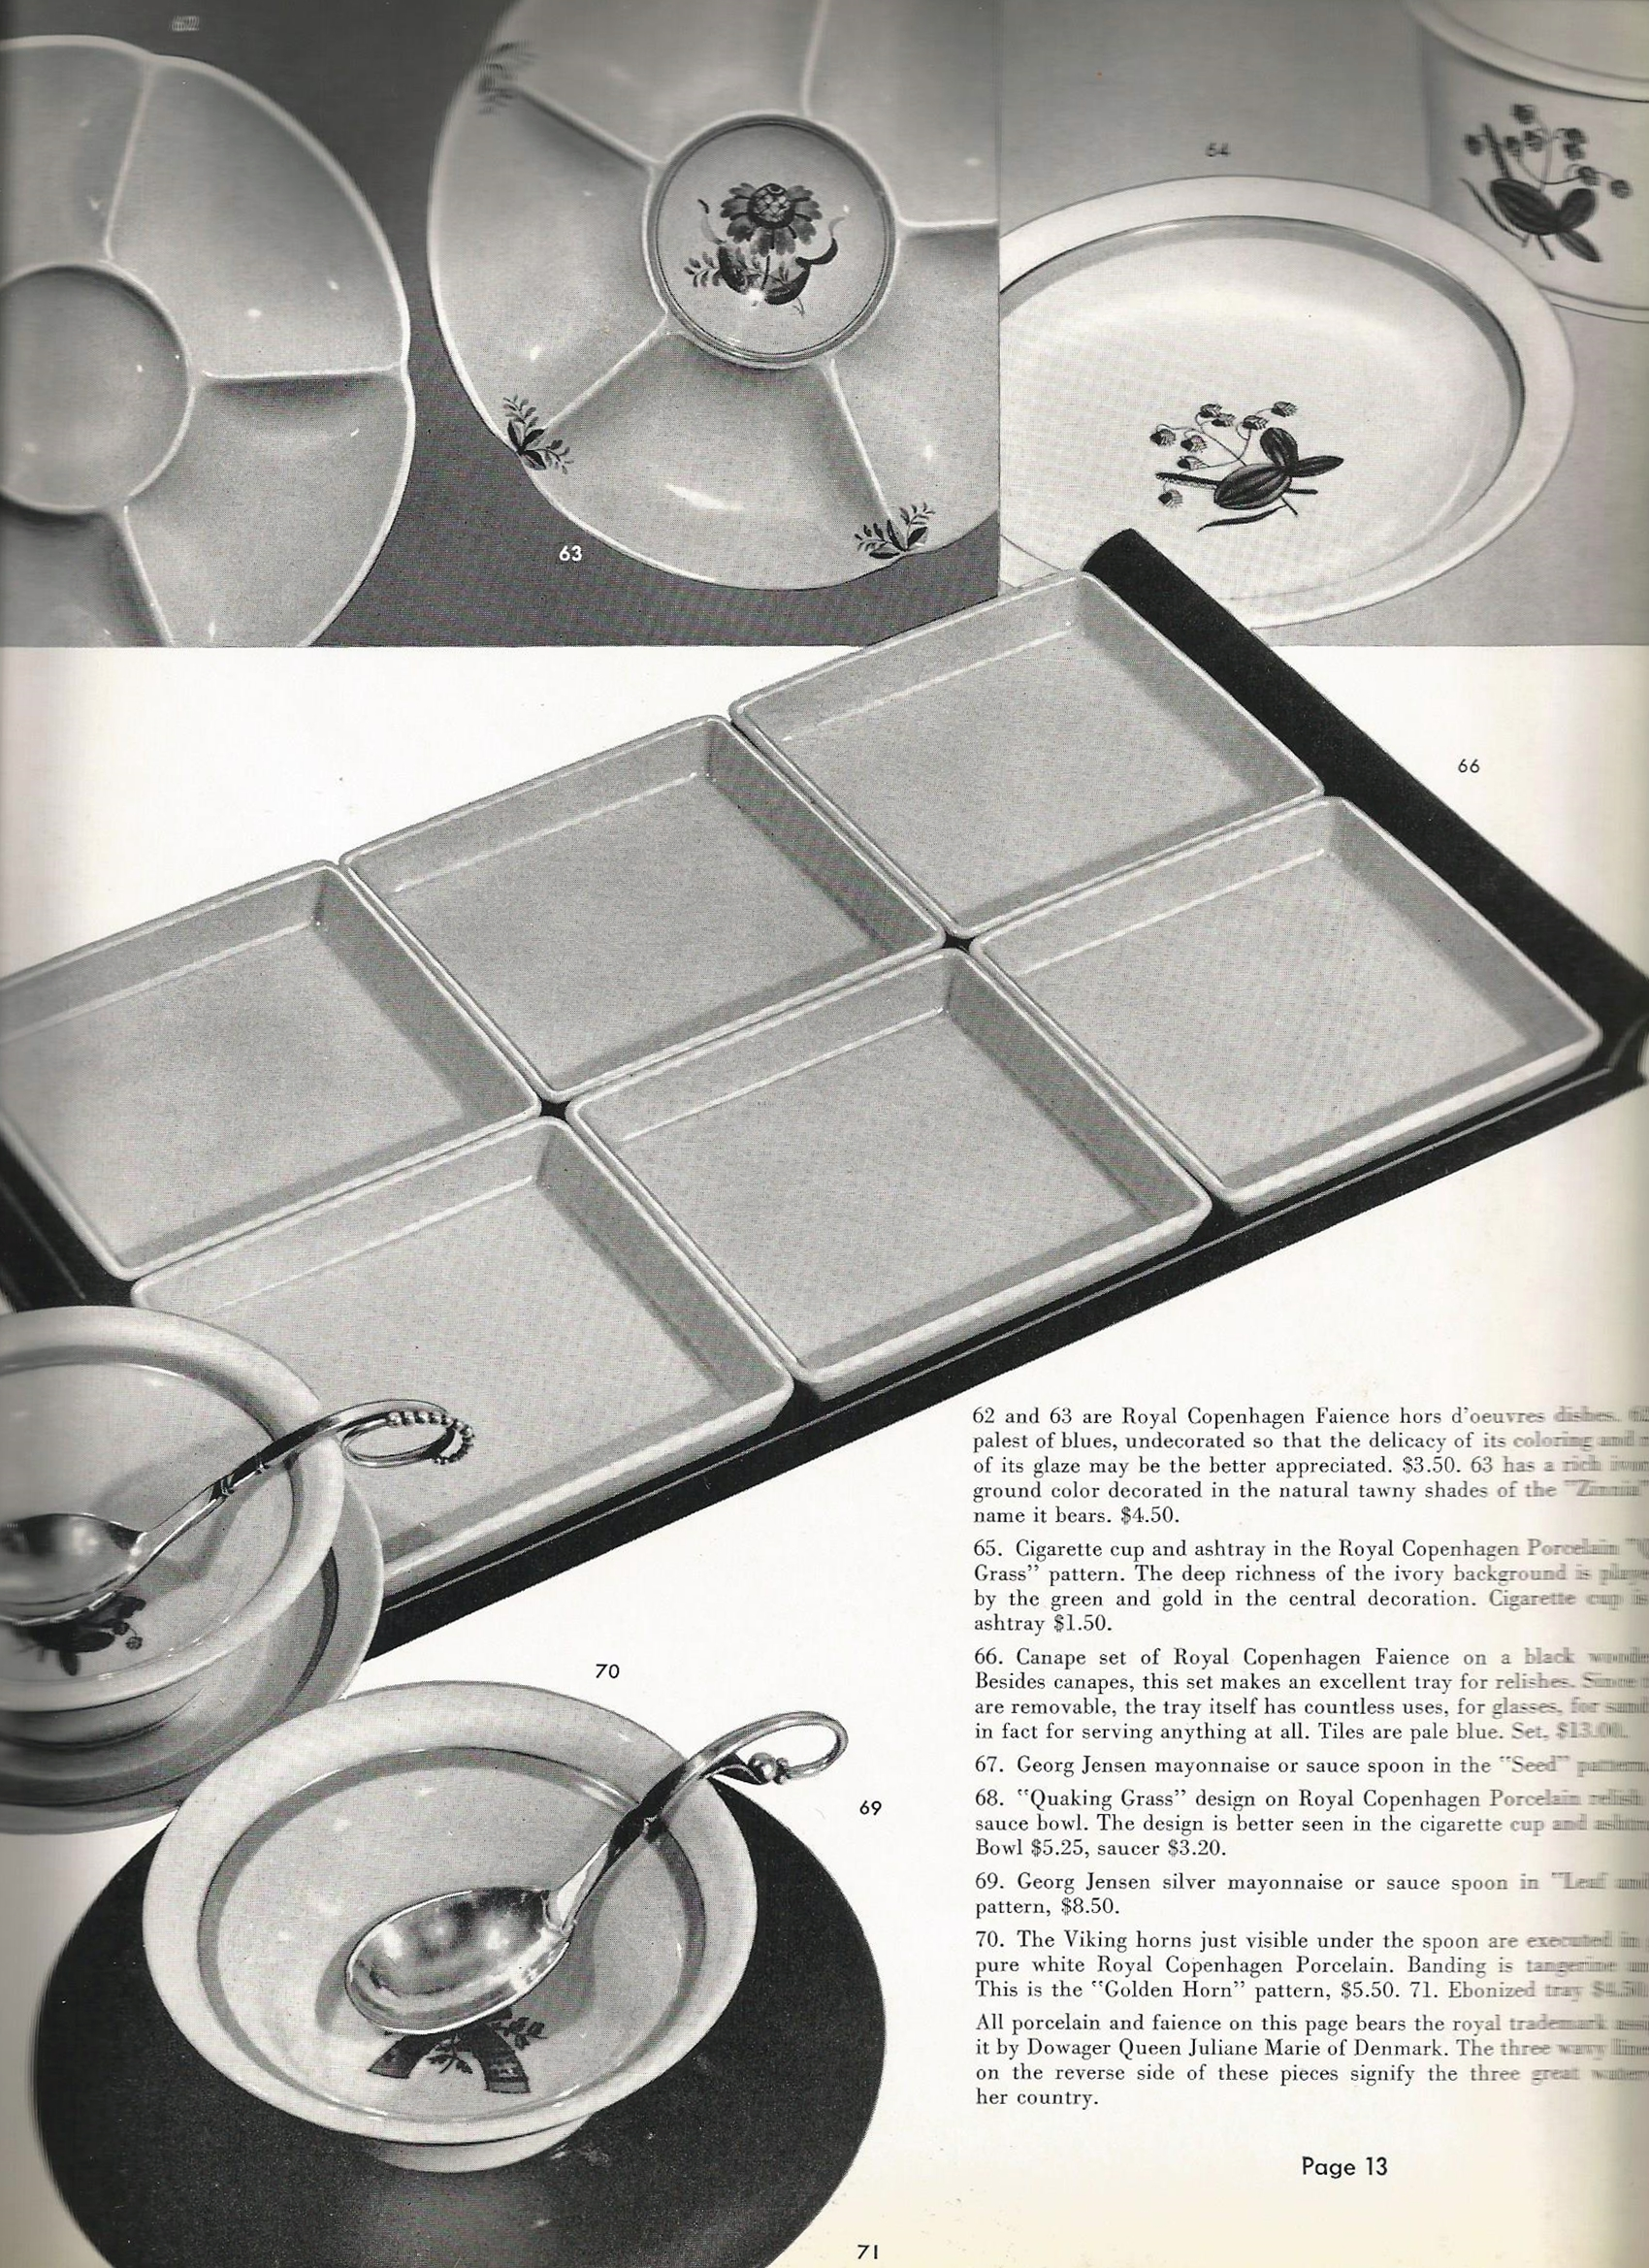 """Again, some of the more unusual patterns are shown. The catalog identifies 67, which is in pattern #41 as """"Georg Jensen mayonnaise or sauce spoon in the """"Seed"""" pattern, $8.50."""" and 69, which is in the unnamed pattern #21 as""""Georg Jensen mayonnaise or sauce spoon in the """"Leaf and Seed"""" pattern, $8.50."""". perhaps to assist customers in identifying these unnamed patterns."""